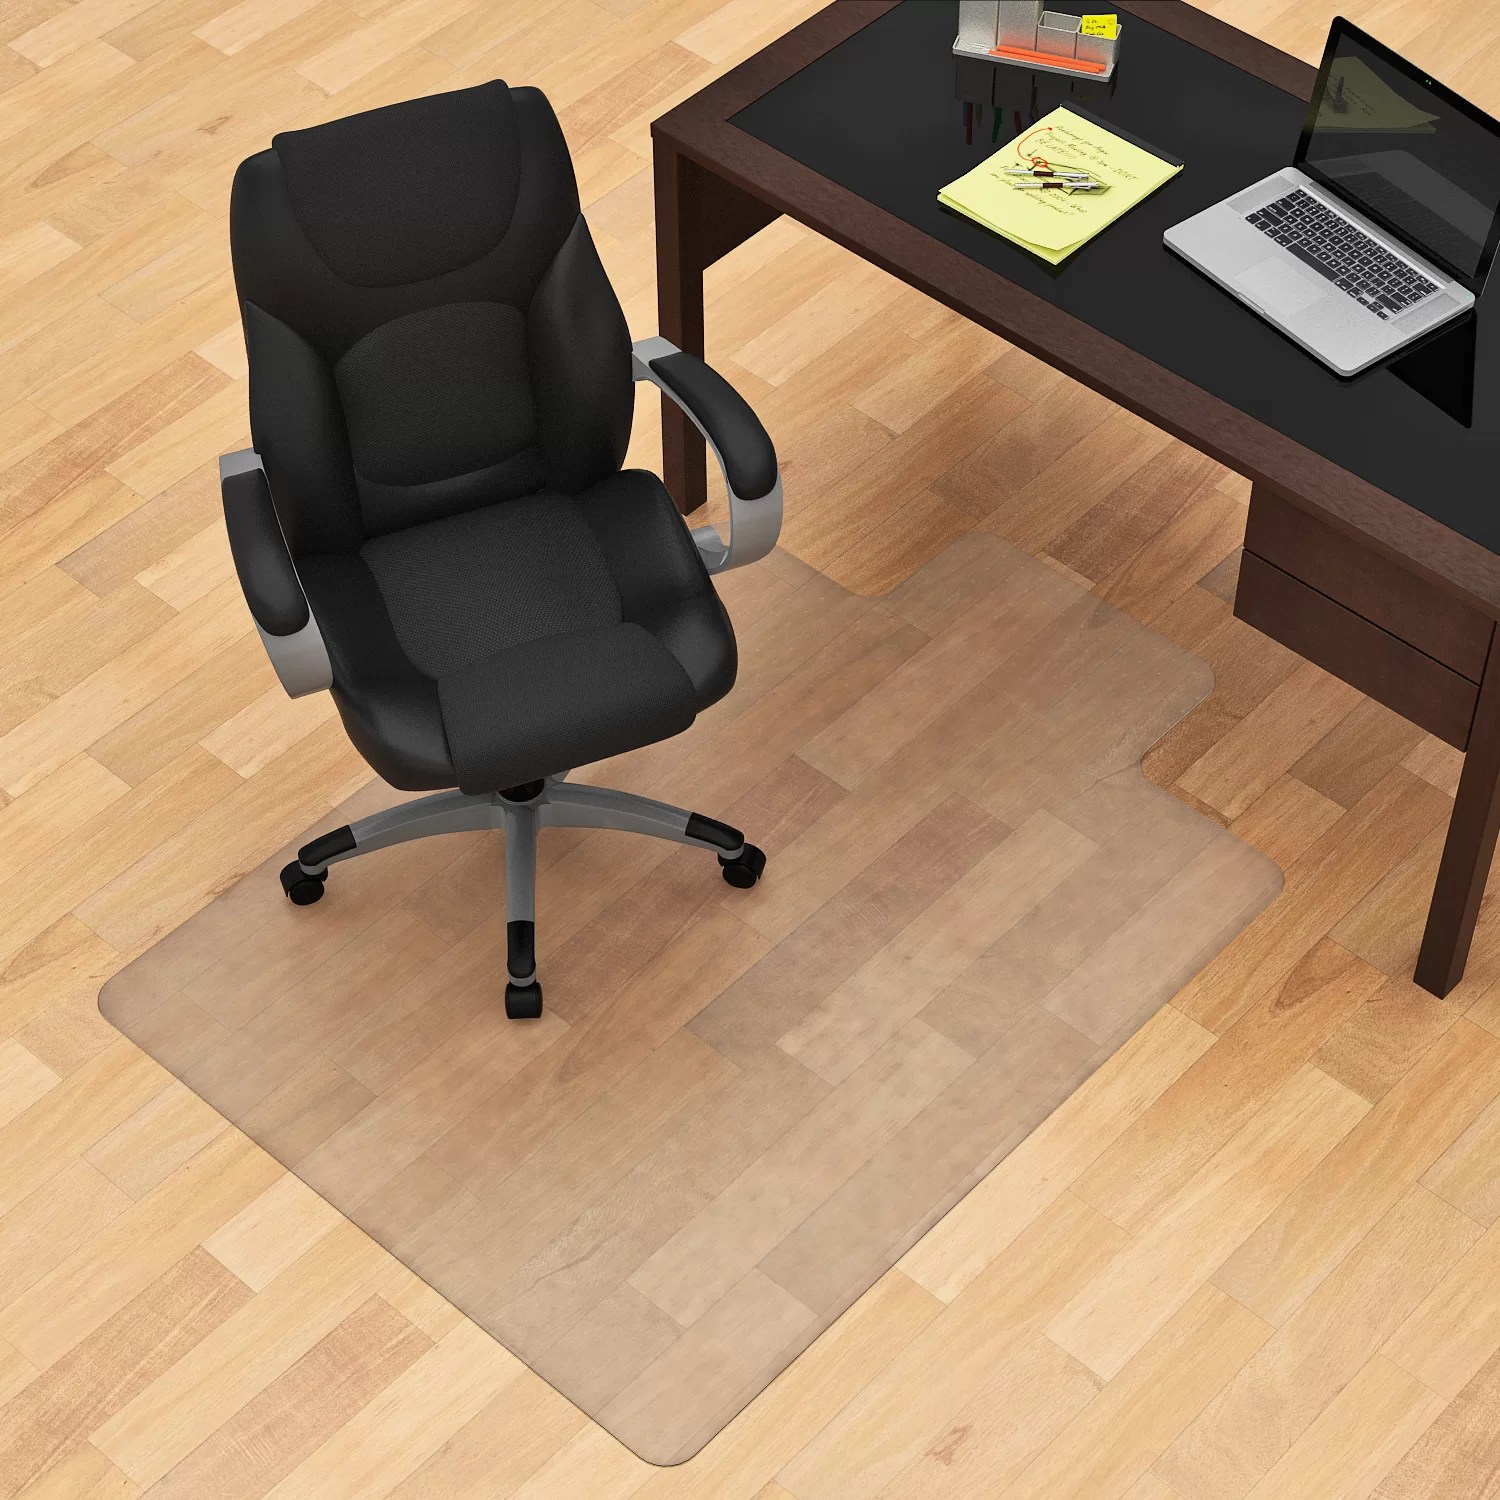 Chair Mats Z Line Designs Hard Floor Straight Edge Chair Mat